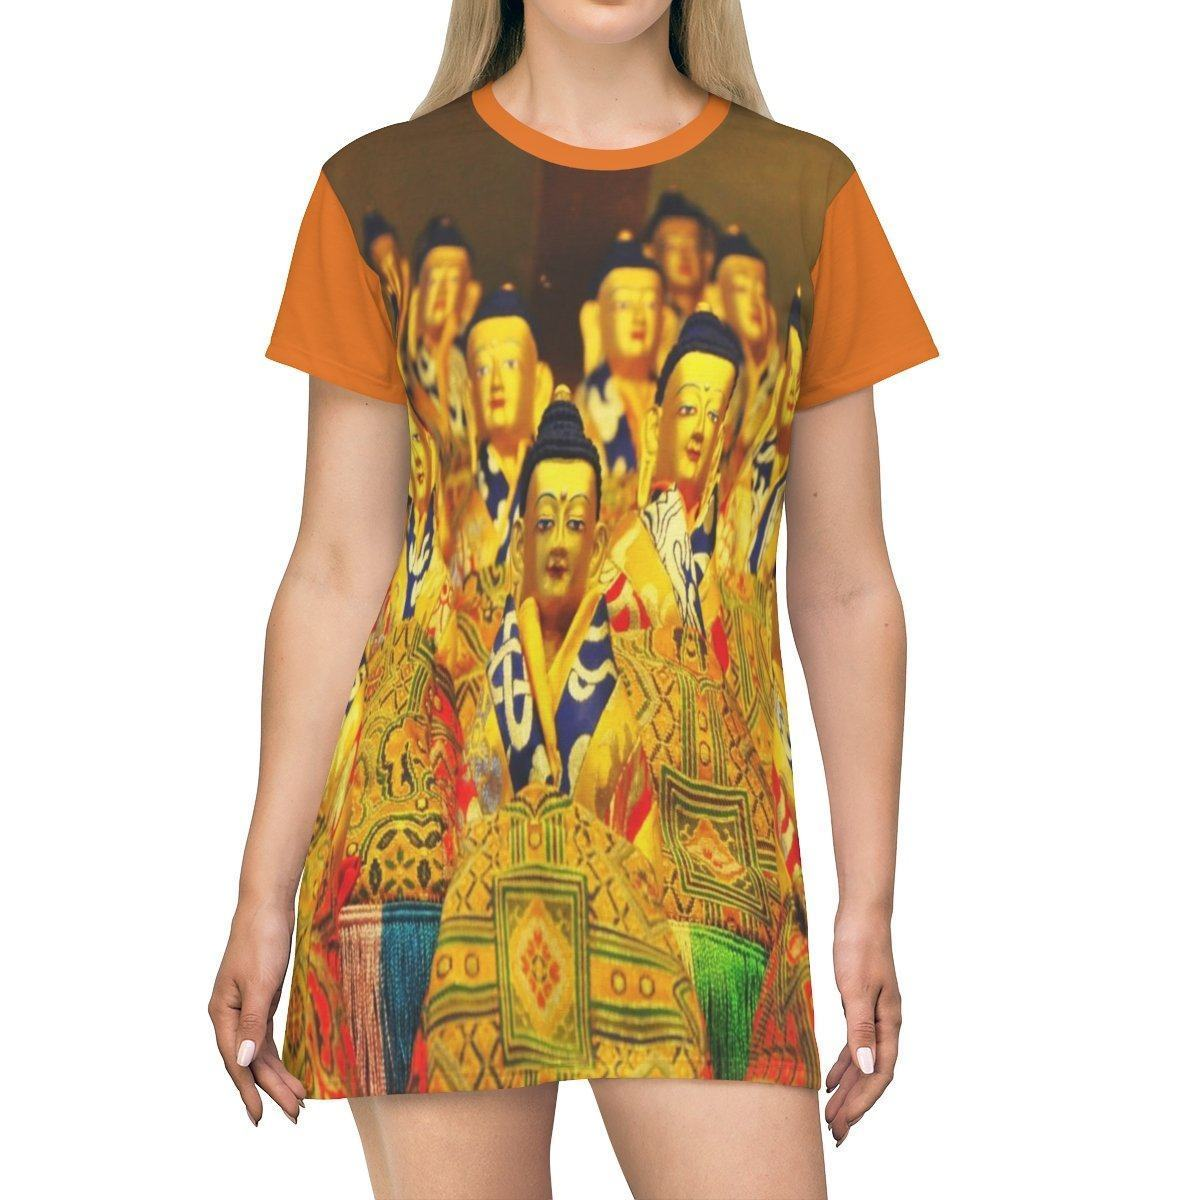 AOP T-shirt Dress - Buddhas in Tibetan temple and the 14th Dalai Lama in Prayer - Buddhism All Over Prints Printify